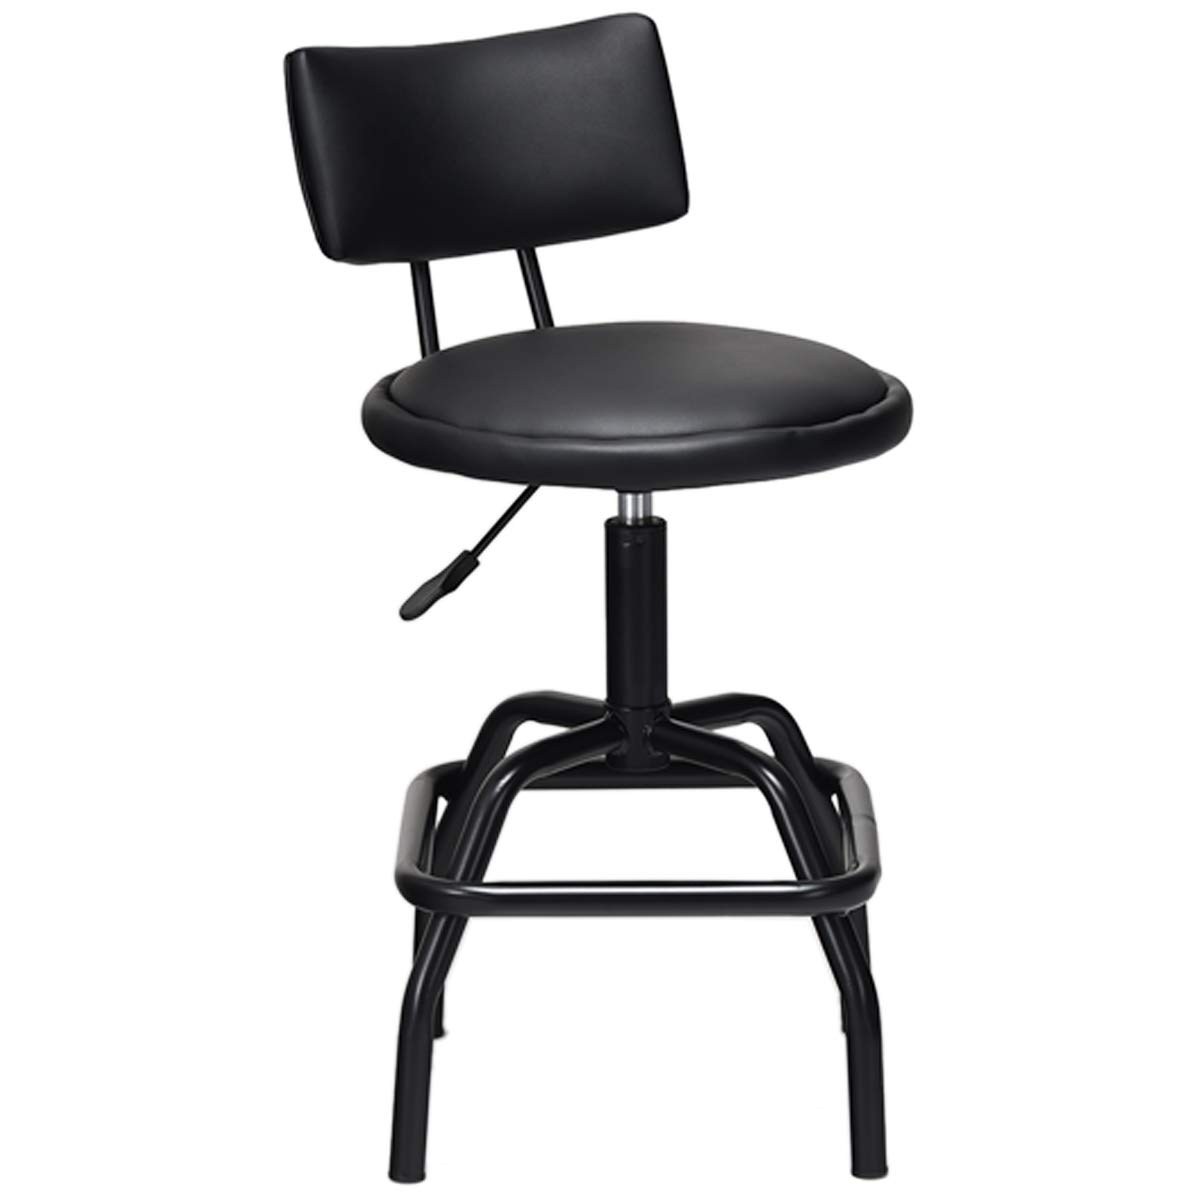 COSTWAY Barstool, Modern Armless Comfortable Adjustable Hydraulic Heavy Duty Steel Frame Stool Bistro Pub, Modern PU Leather Cushion and Backrest for Home, Bar and Shop, Black 1 Retro Style Stool